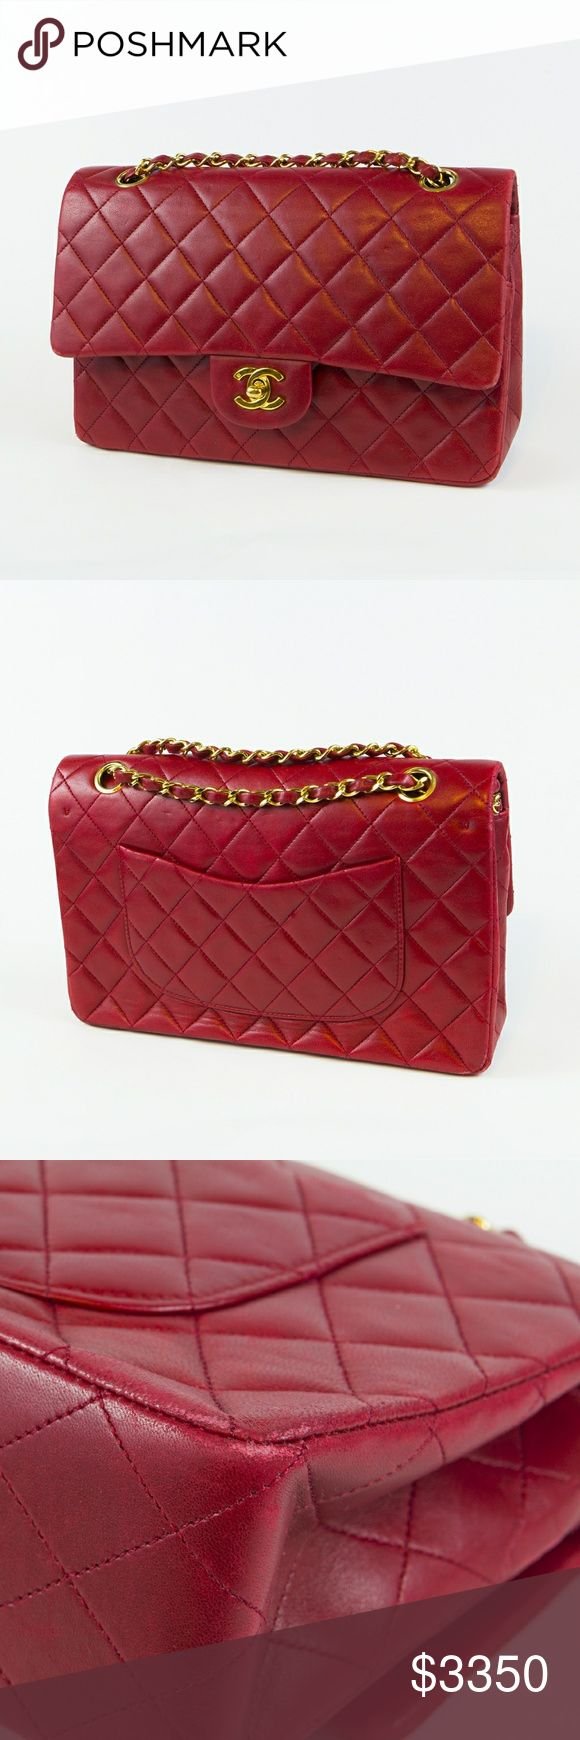 """Red Medium Classic Chanel Flap Bag Preloved medium Chanel Flap bag in a beautiful vermillion red. There is minor rubbing on the corners and some minor color fade, but as you can see it is still a beautiful bag. Great way to add a pop of color to any outfit. Will come with dustbag. Serial intact. 10""""×7"""" approximately.   For lower sales price please visit us at: www.luvreshop.bigcartel.com  Or for monthly payments, visit us at: www.tradesy.com/closet/luvre/ CHANEL Bags"""